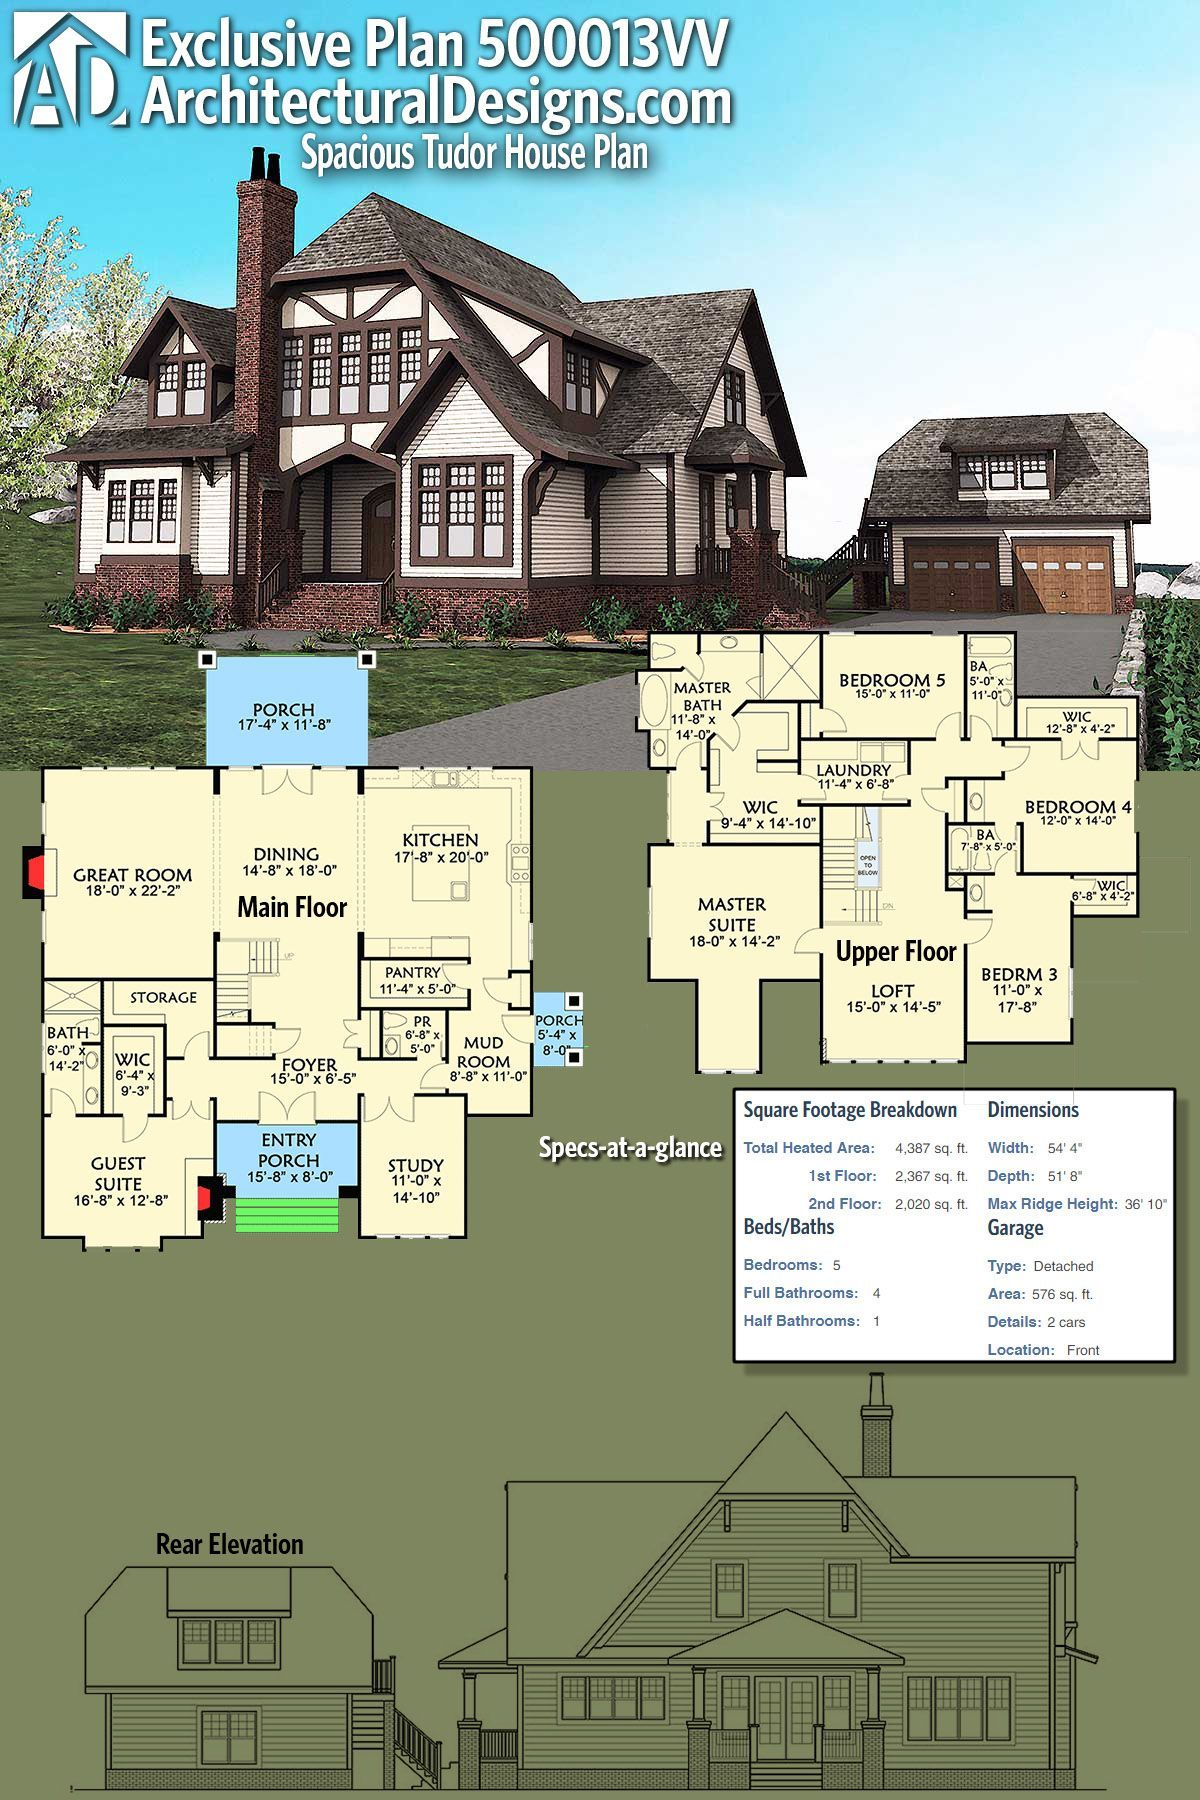 Architectural Designs Tudor House Plan 500013vv Gives You 5 Beds